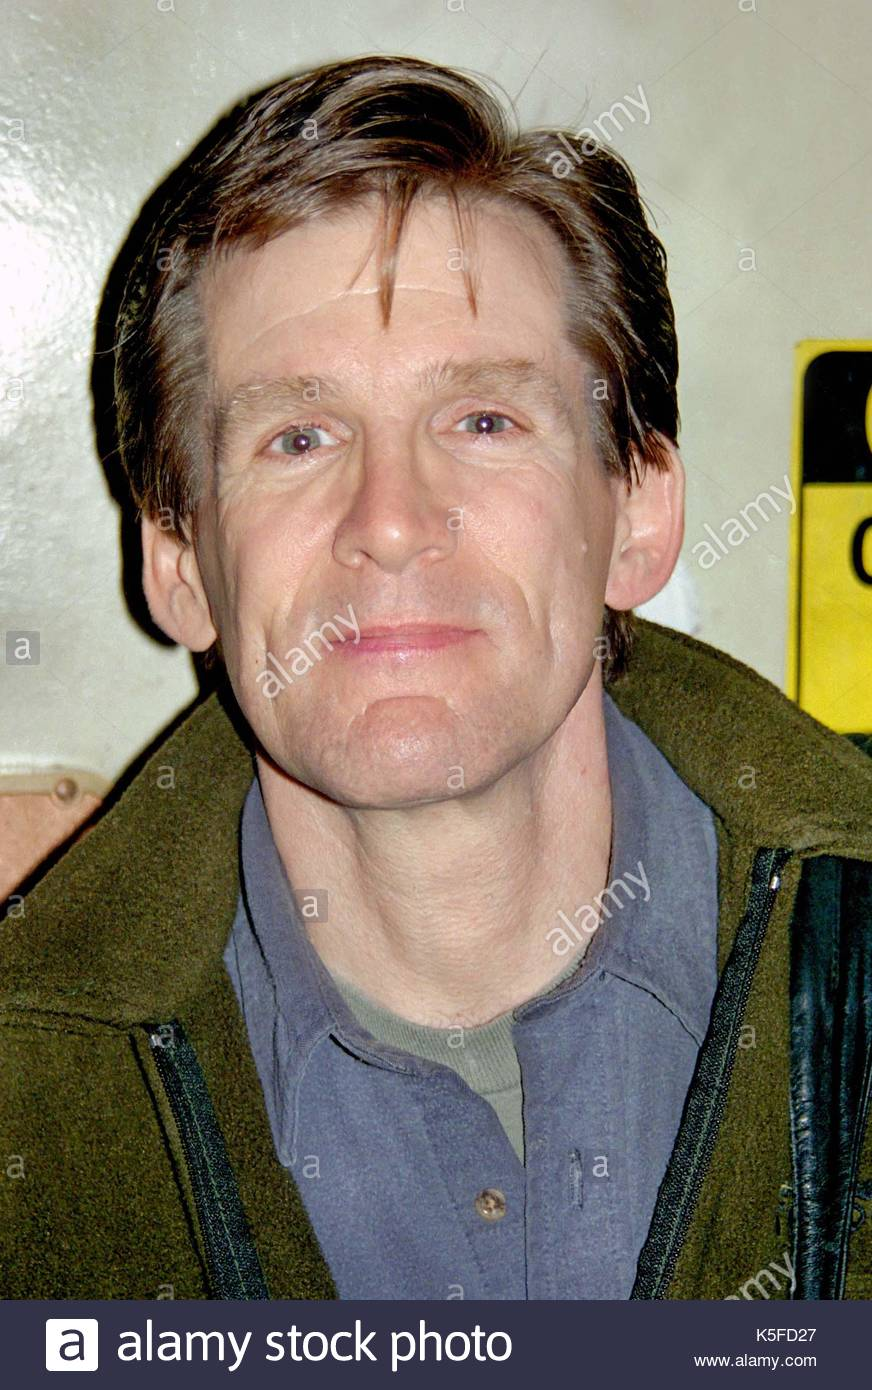 Anthony heald bushwhacked